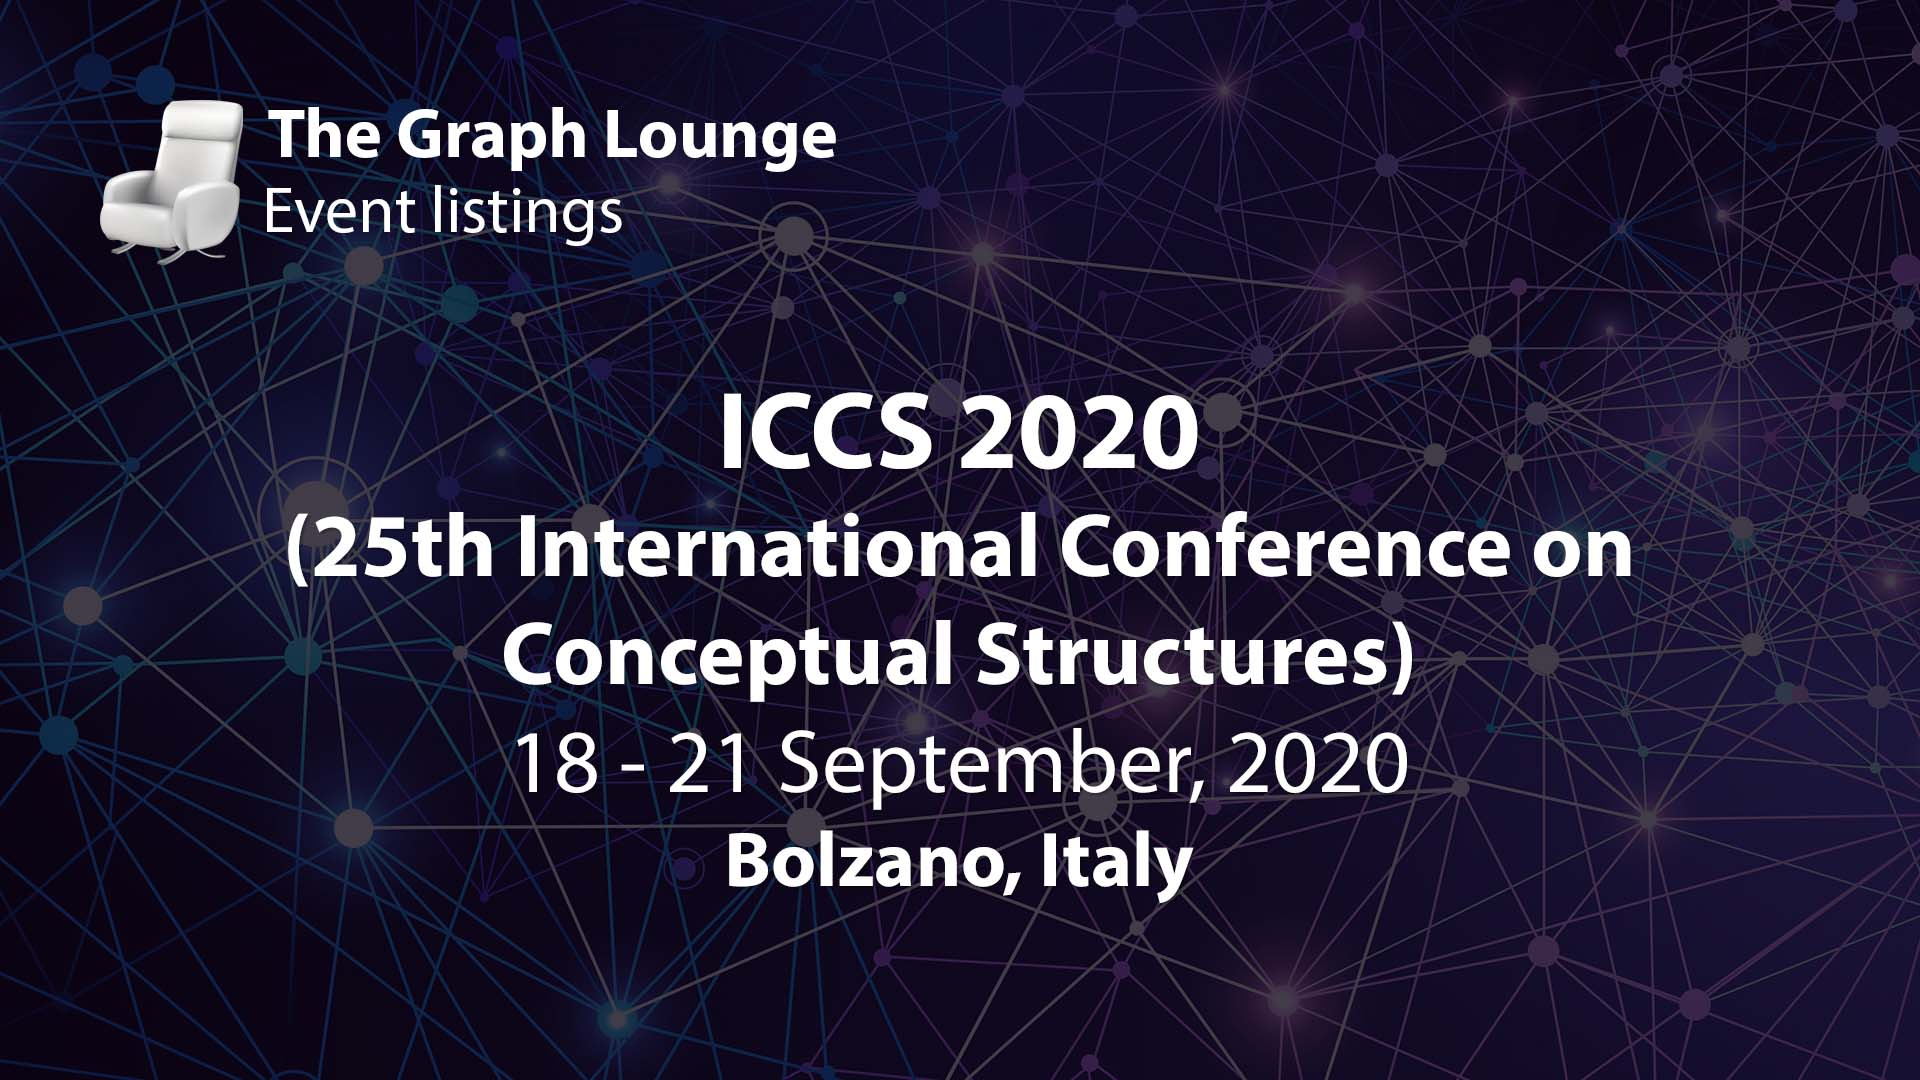 ICCS 2020 (25th International Conference on Conceptual Structures)